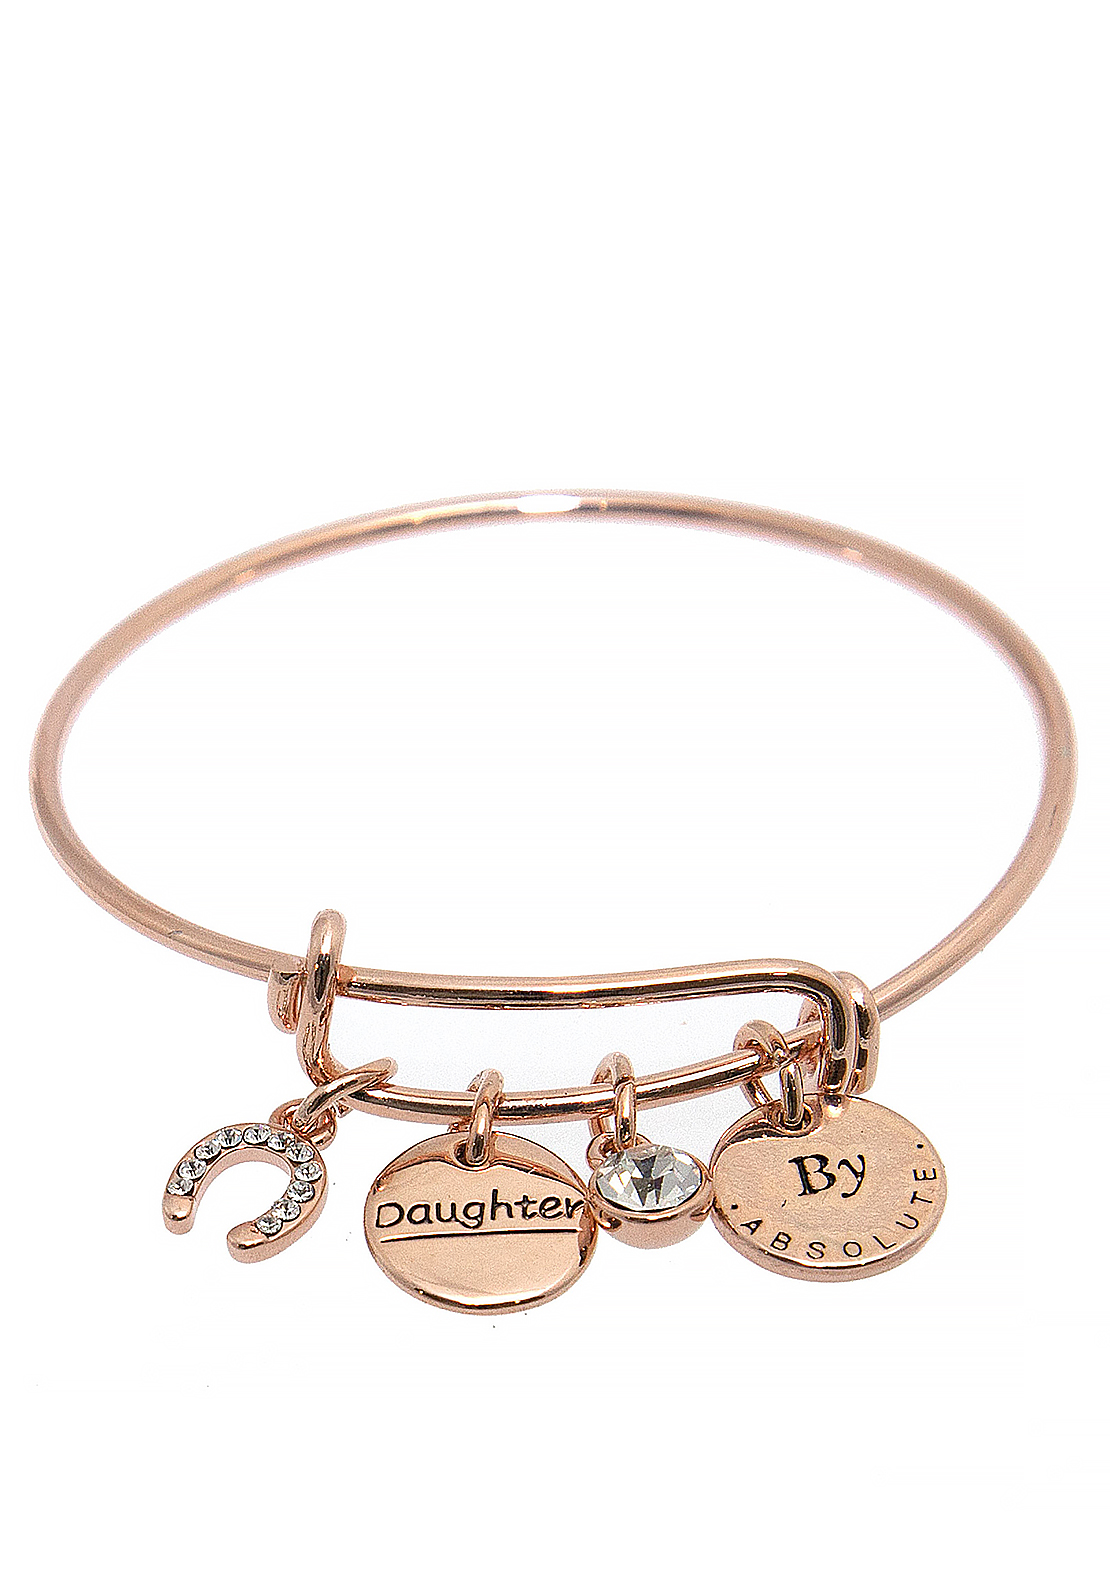 Absolute Jewellery Girls Daughter Charm Bangle, Rose Gold